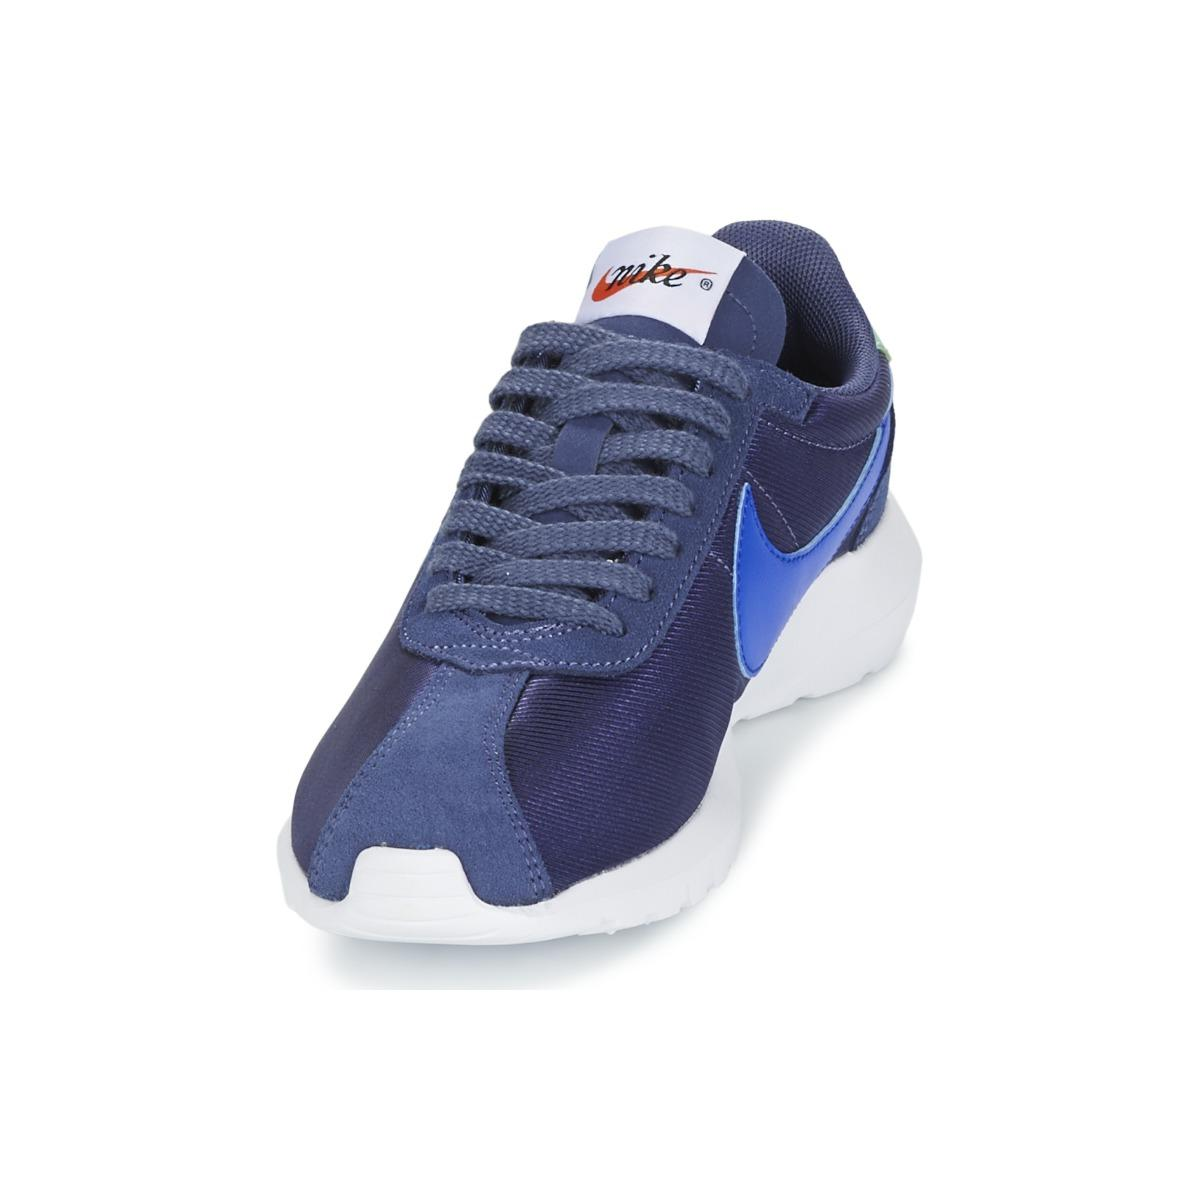 Nike Synthetic Roshe Ld-1000 W Shoes (trainers) in Blue